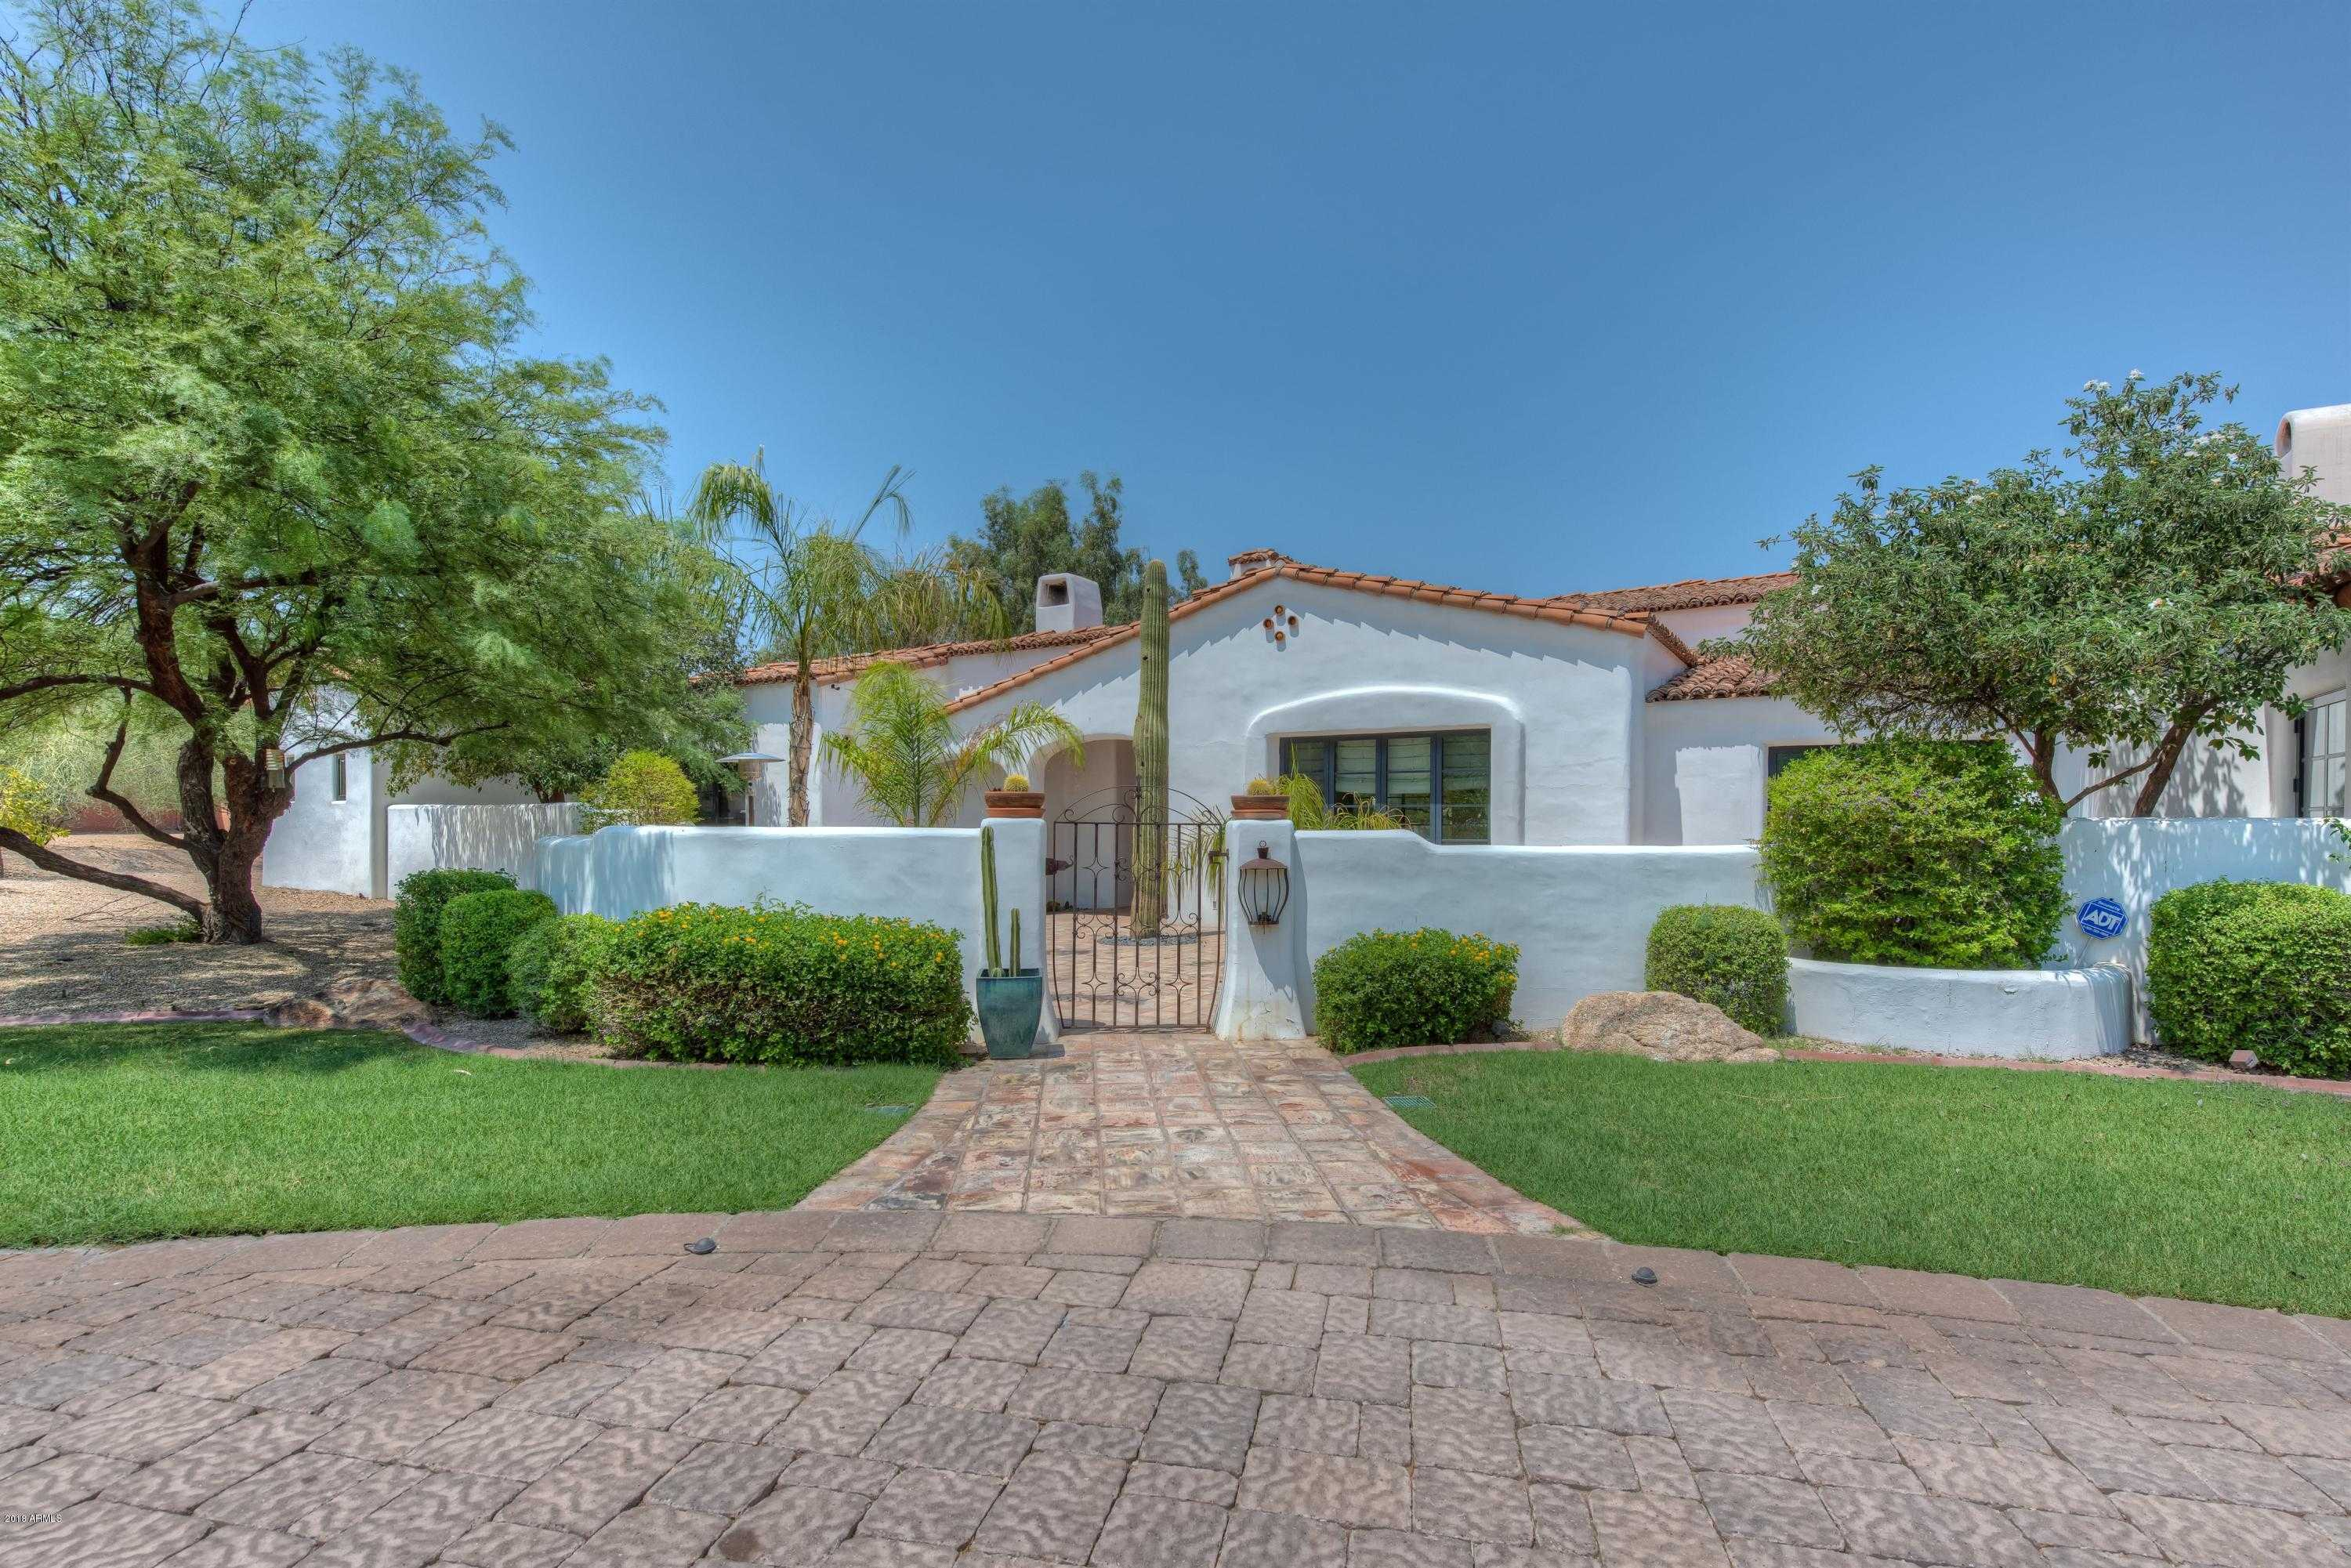 $2,600,000 - 5Br/5Ba - Home for Sale in Cheney Manor Lot 1-8, Paradise Valley